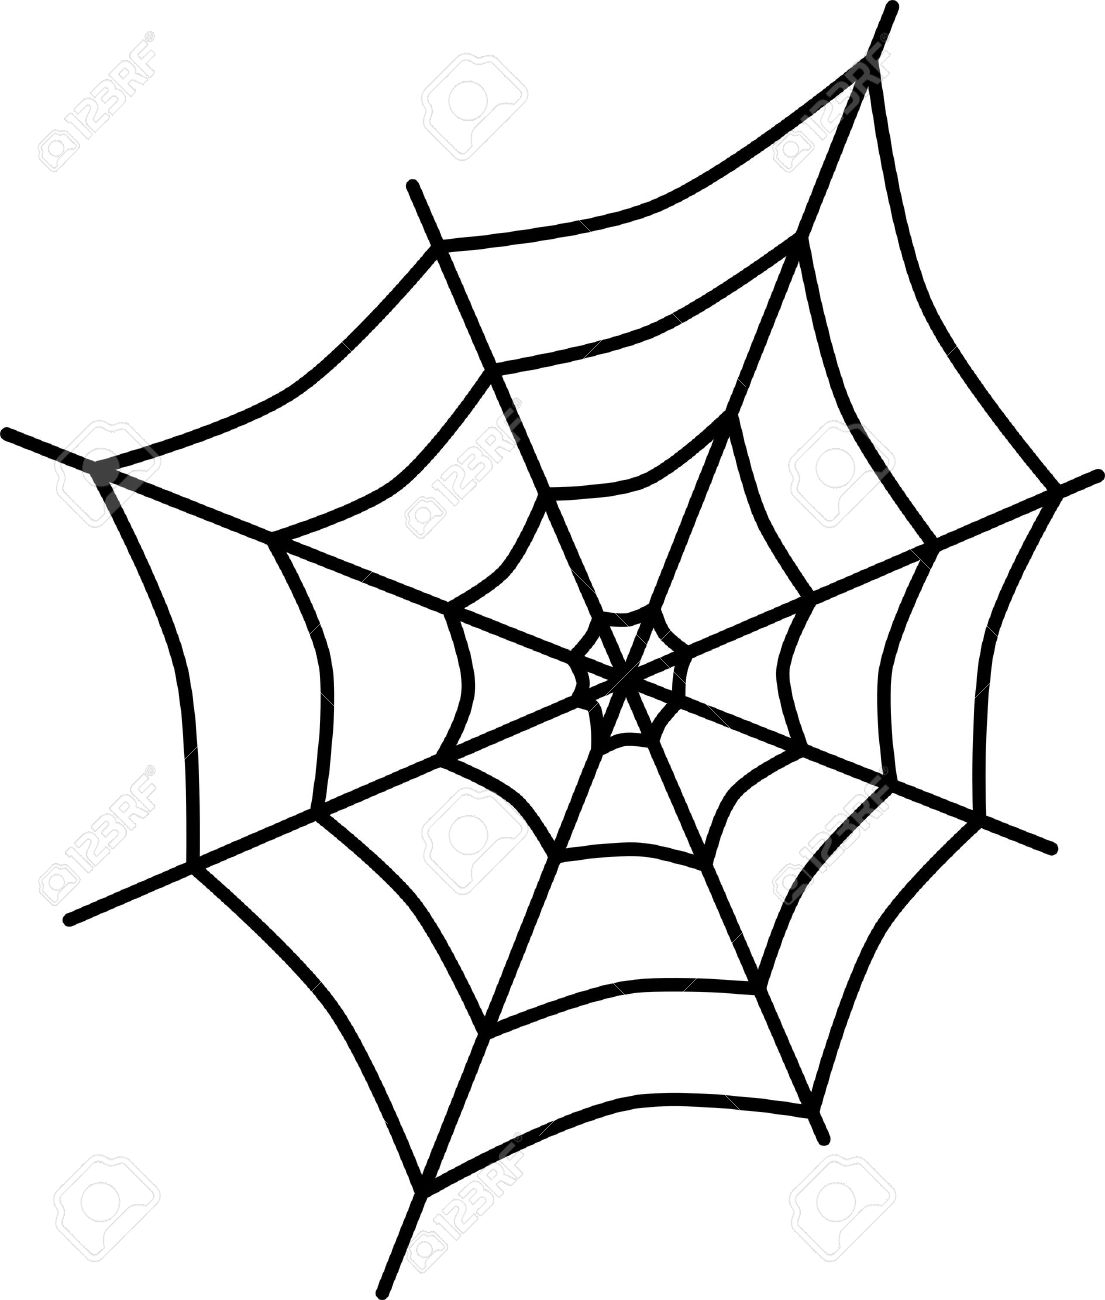 1105x1300 Spider Web Cartoon Drawing Spider Web Cartoon Stock Photos Images